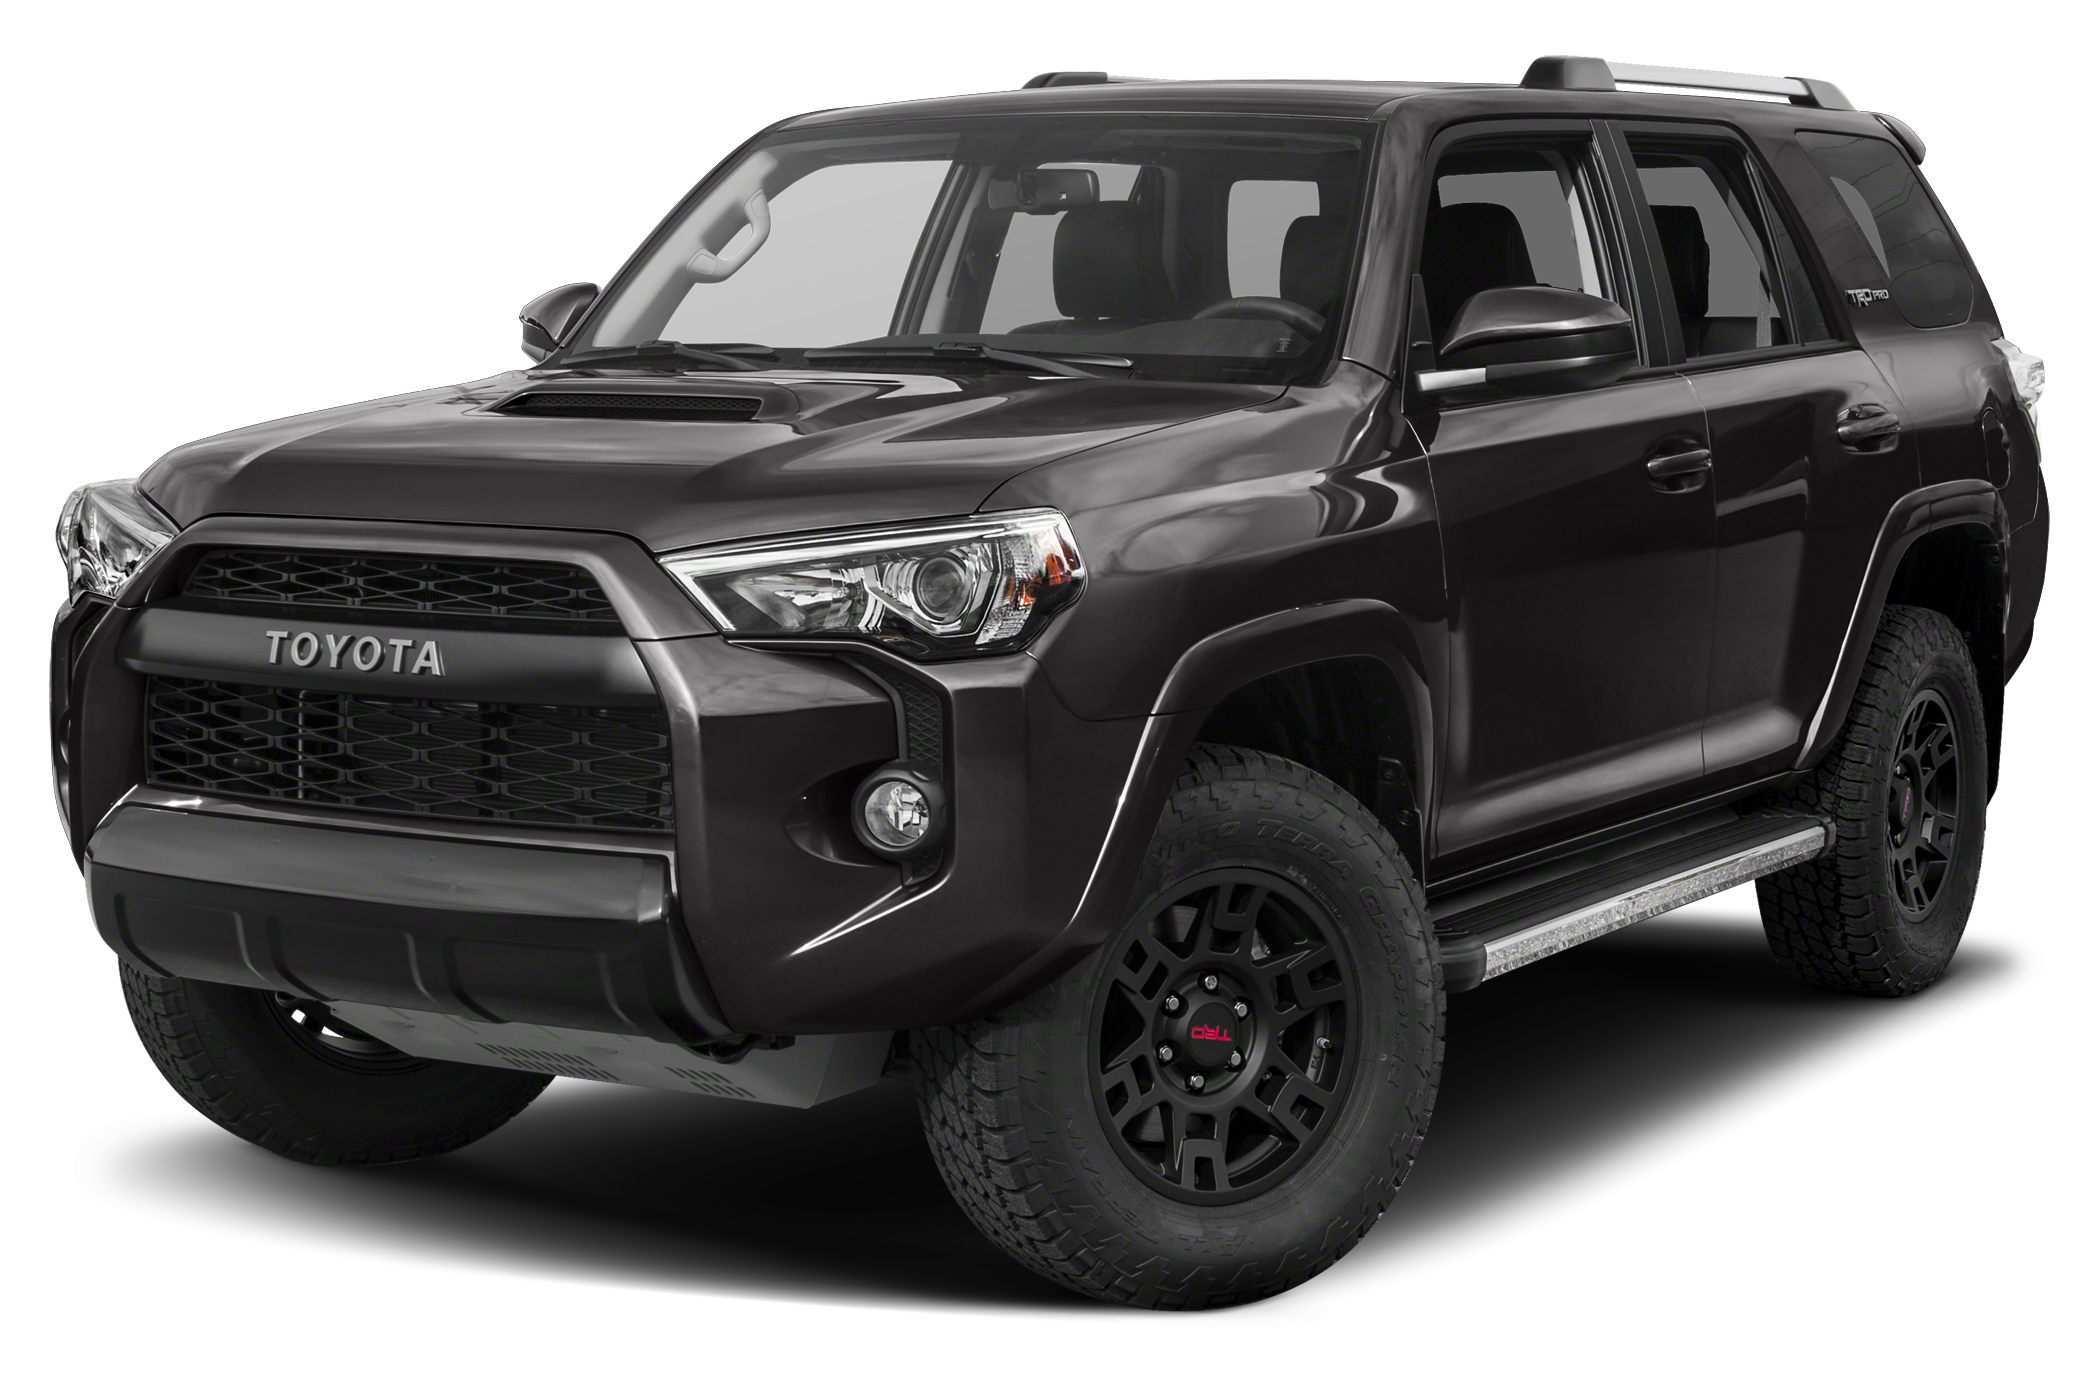 96 The 2019 Toyota 4Runner Engine Spesification by 2019 Toyota 4Runner Engine